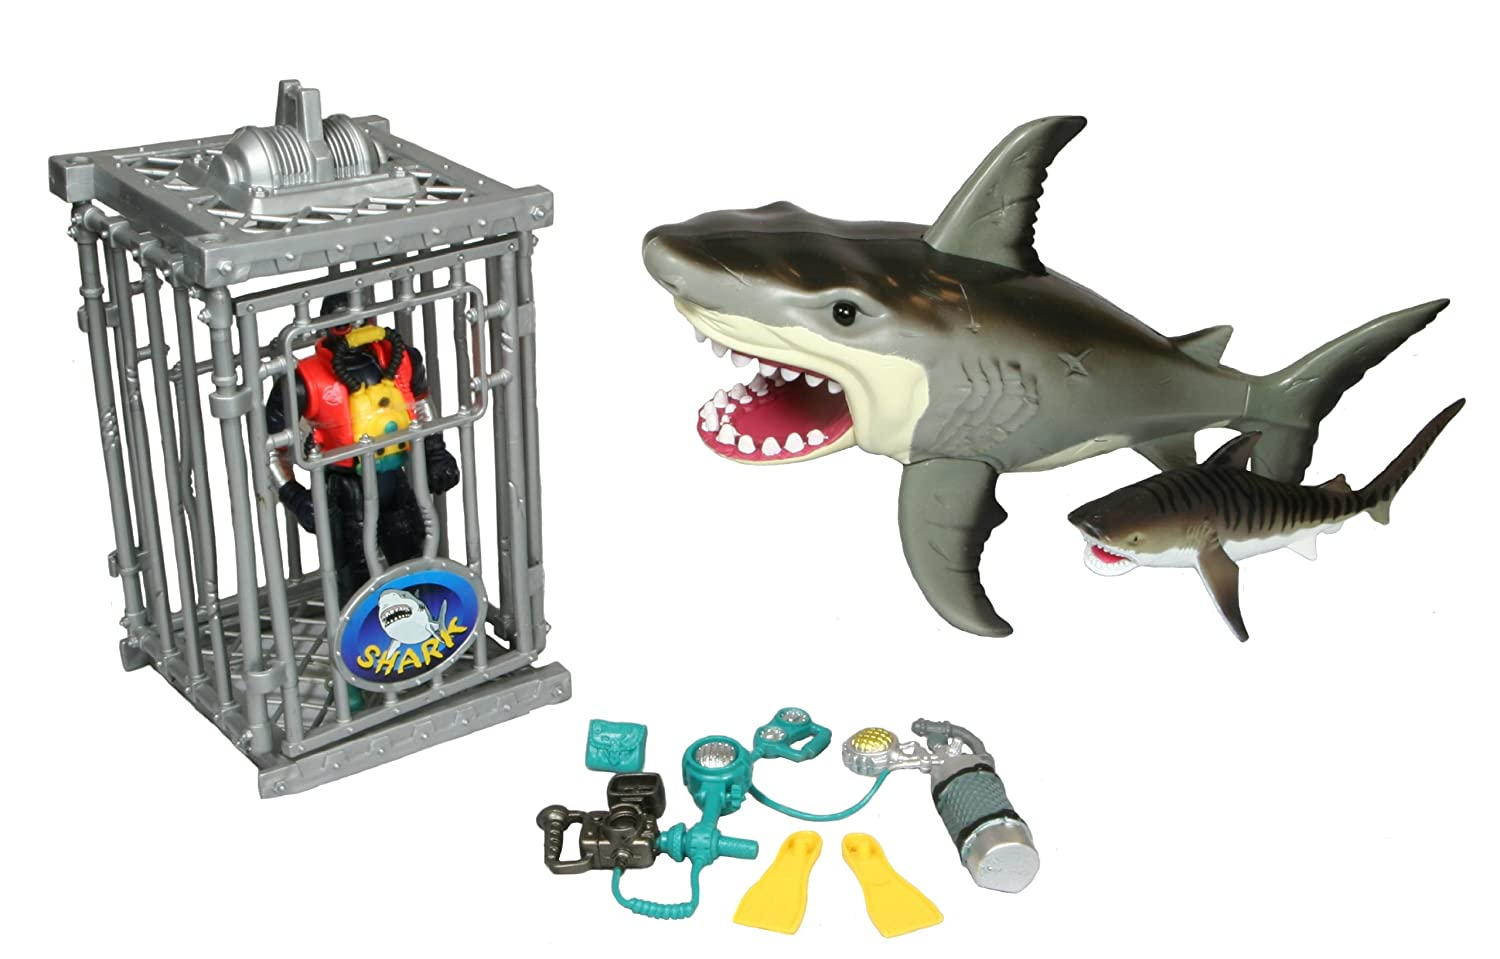 Whale Shark Toys : Shark whale playset and great white animal tiger toy set